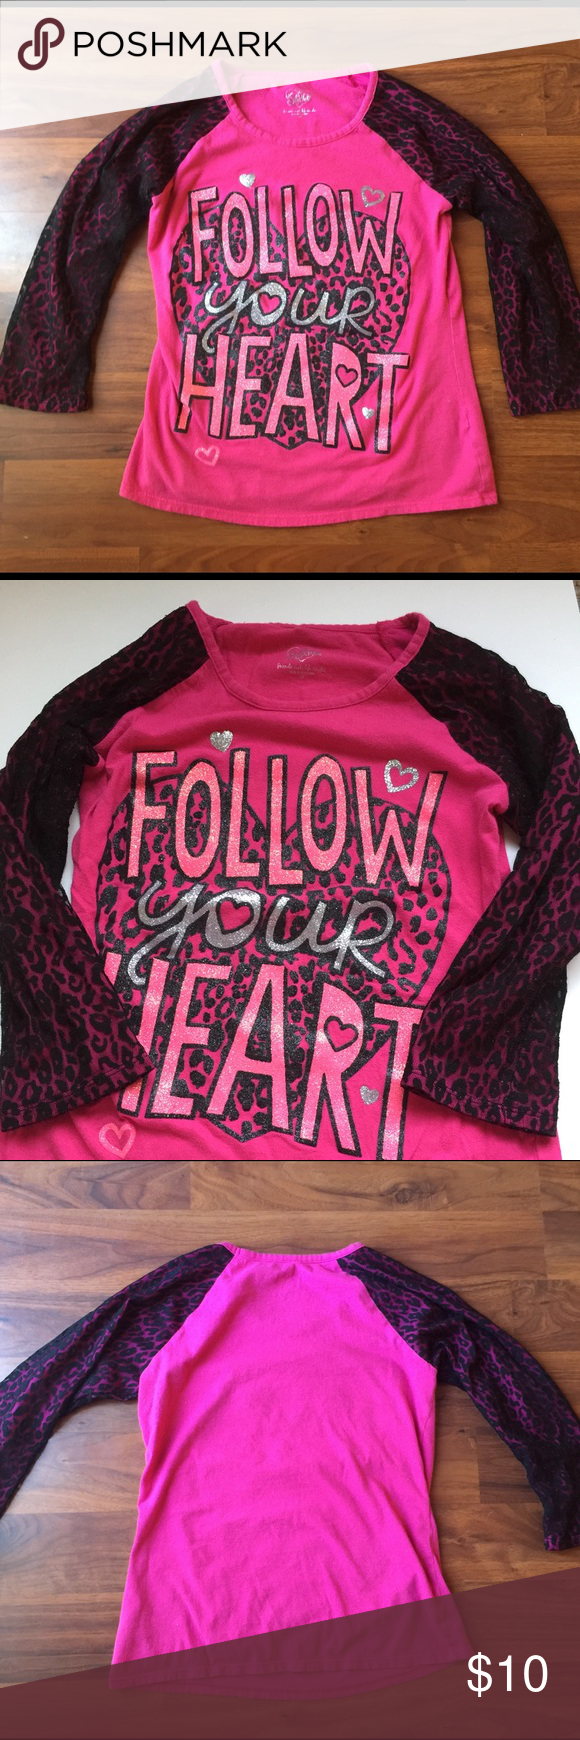 """Justice Top Super cute pink 3/4 sleeved shirt. Says """"Follow your heart"""" on the front. Sleeves have a cheetah print lace design. Other than normal wear from wash, no flaws. Justice Shirts & Tops"""